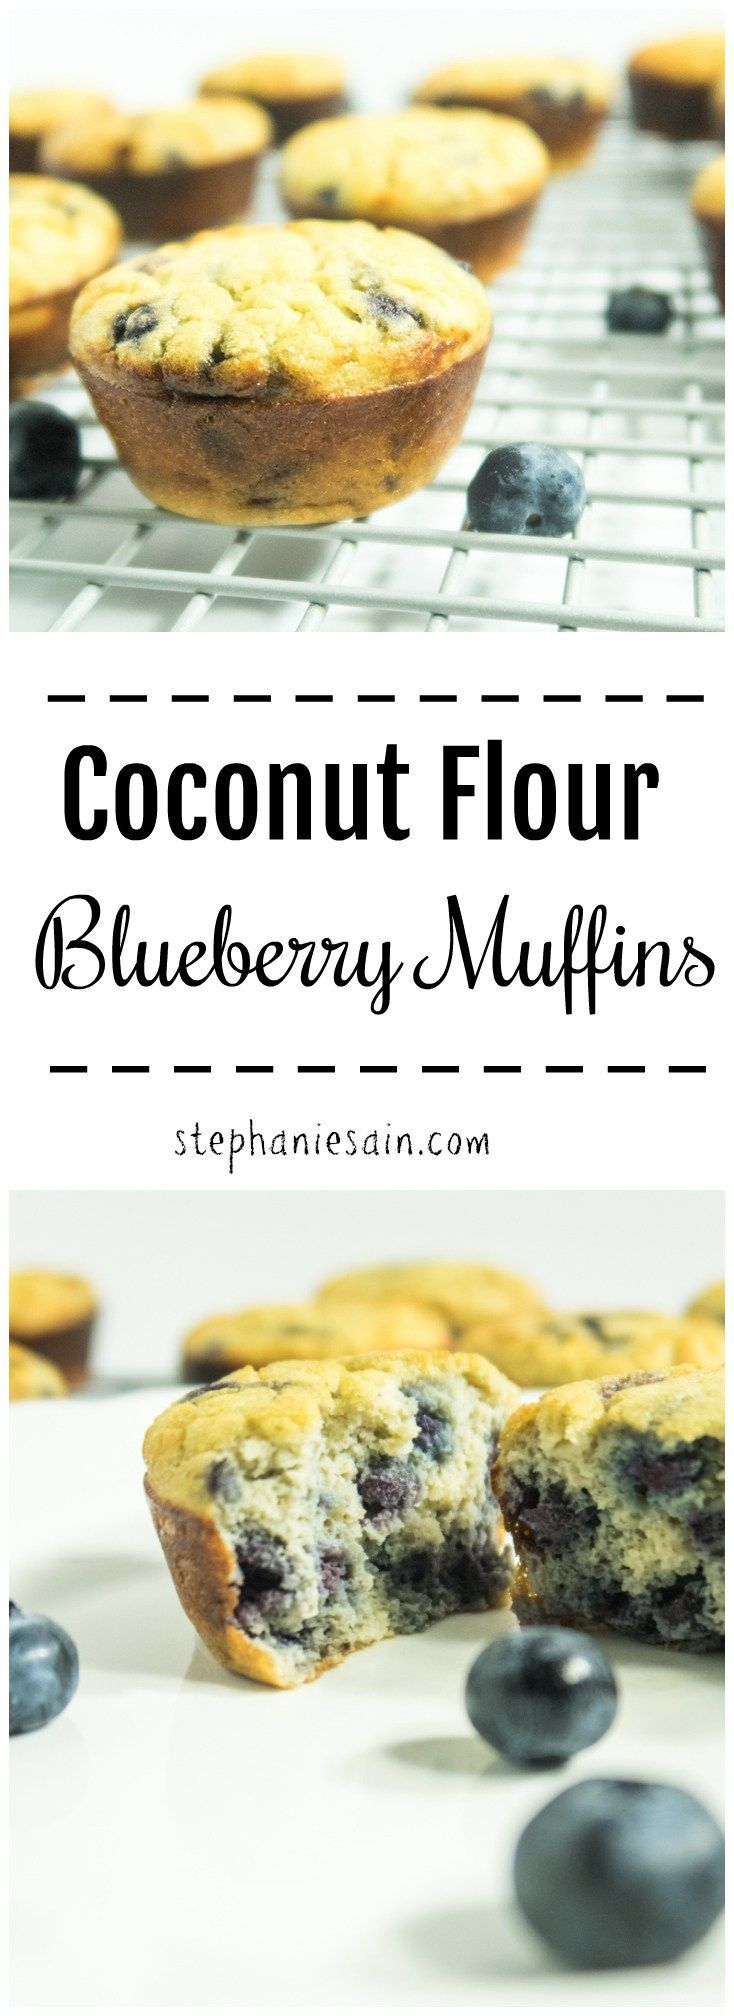 Coconut Flour Blueberry Muffins are deliciously moist, bursting with fresh blueberry flavor and naturally sweetened. Gluten Free, Vegetarian, and no refined sugars.